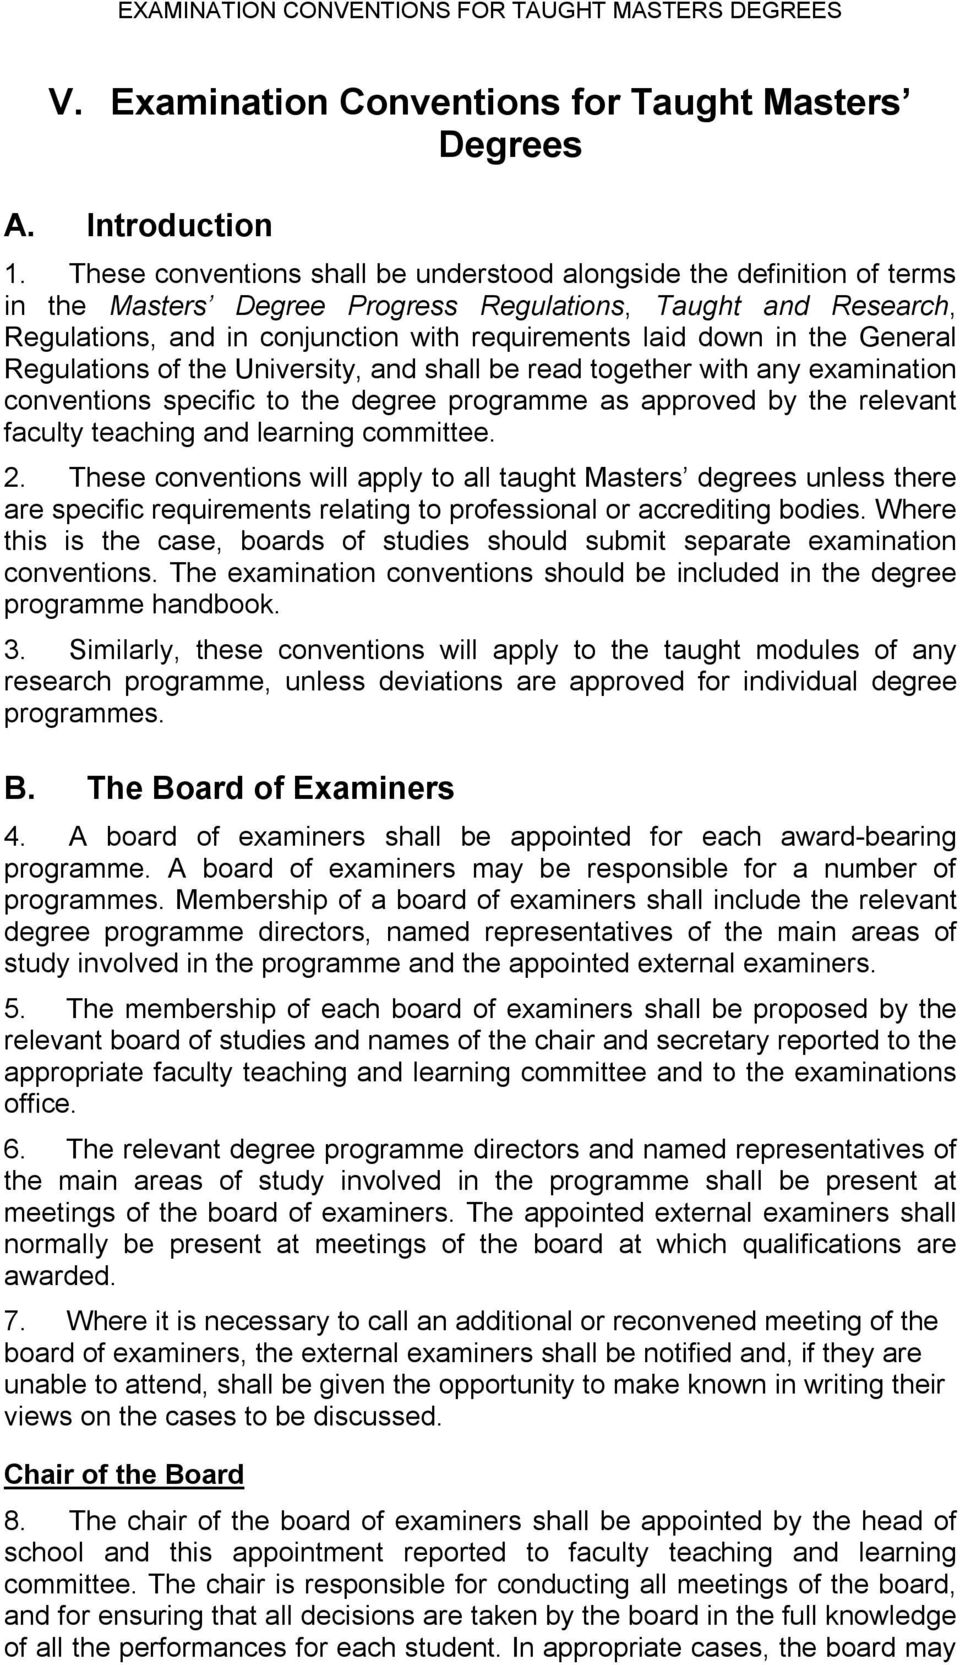 the General Regulations of the University, and shall be read together with any examination conventions specific to the degree programme as approved by the relevant faculty teaching and learning